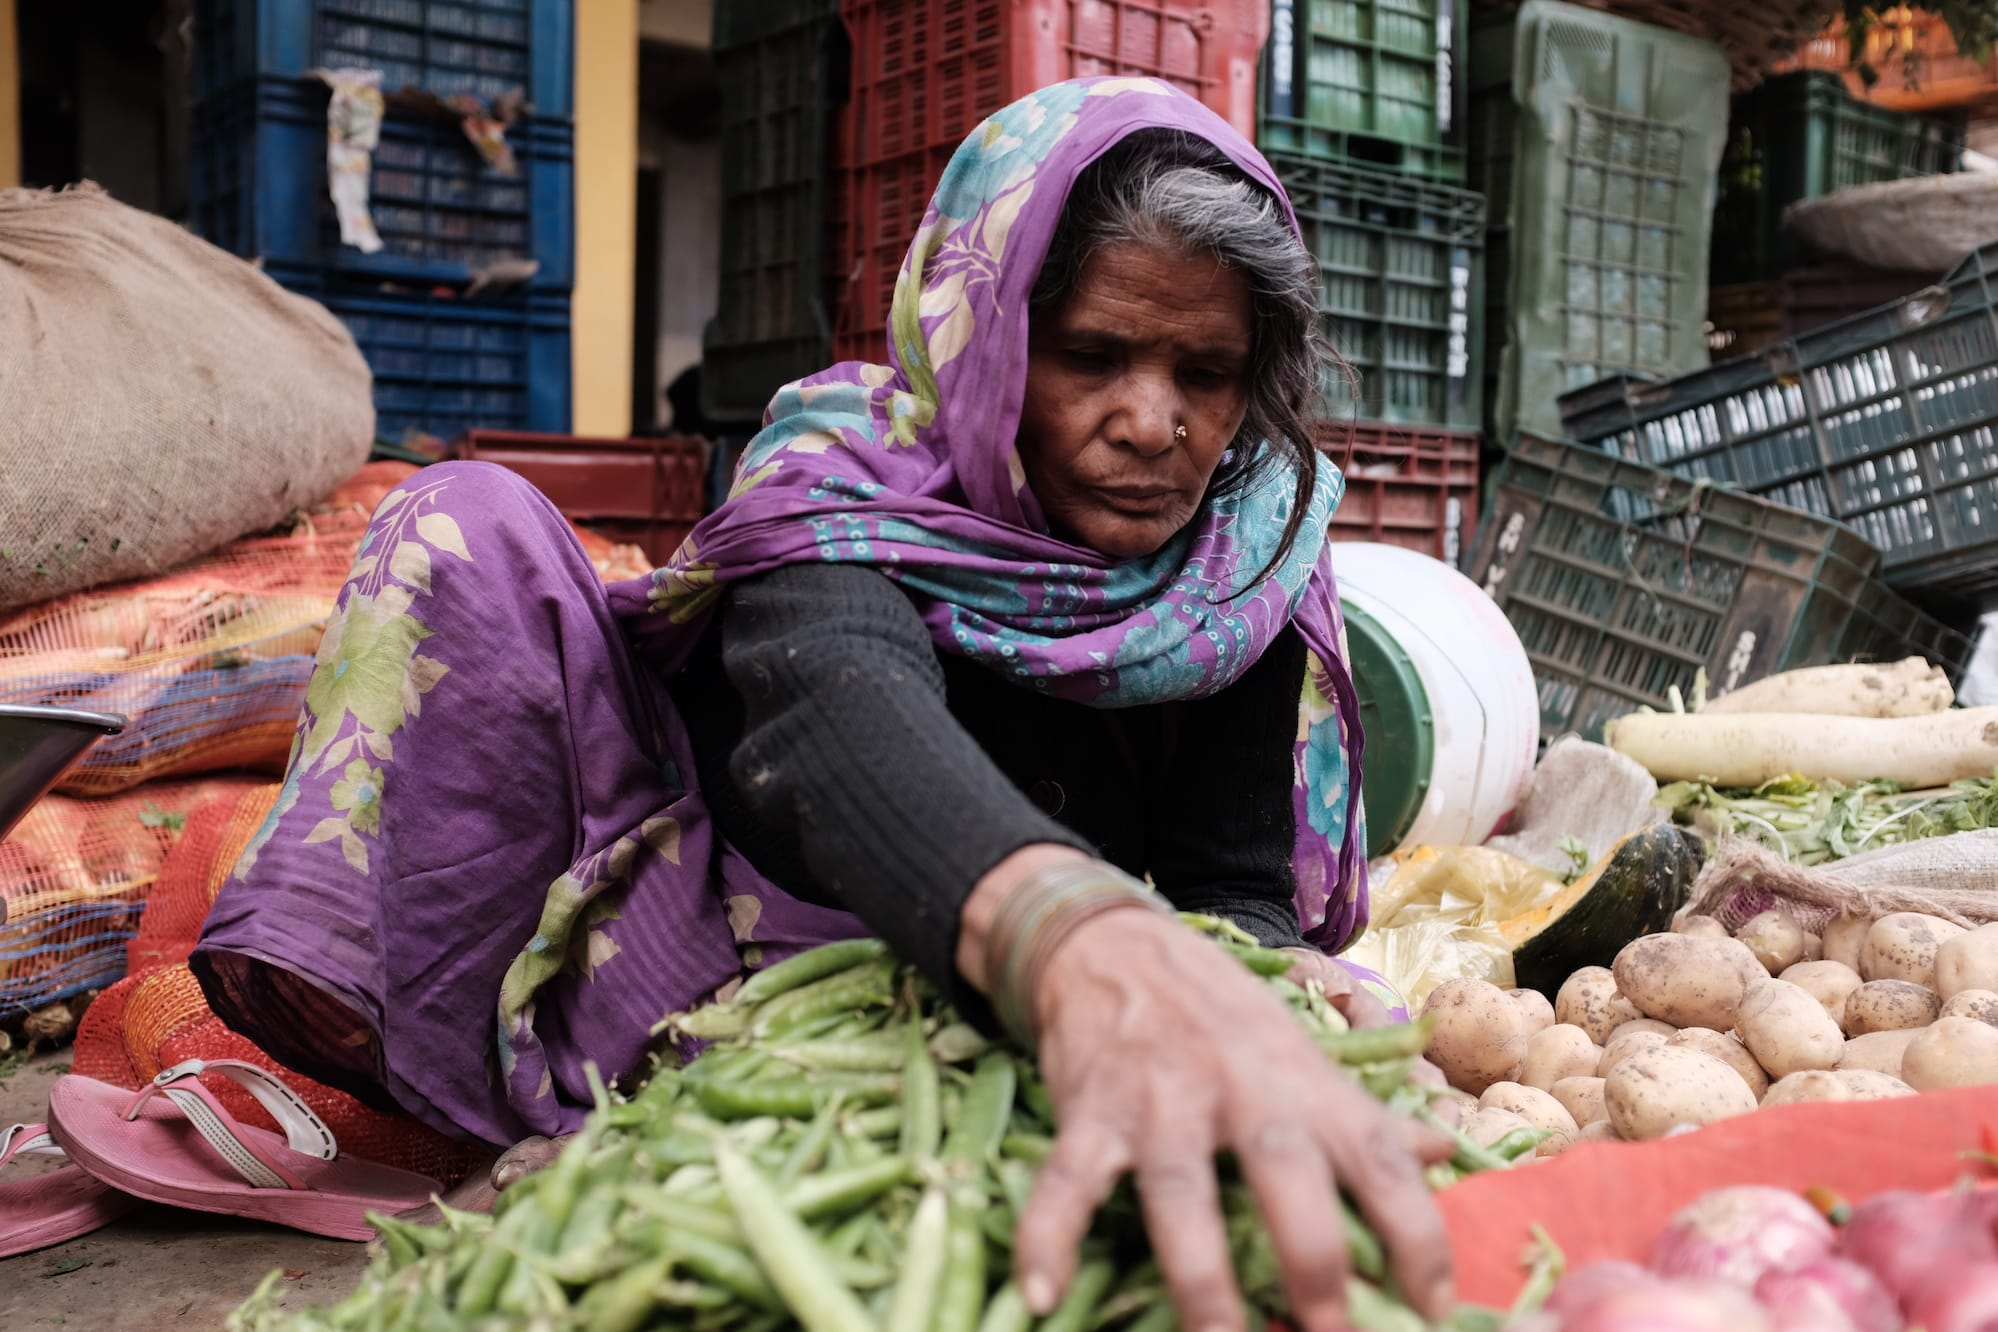 A Woman Selling Vegetables at a Market in Delhi, India